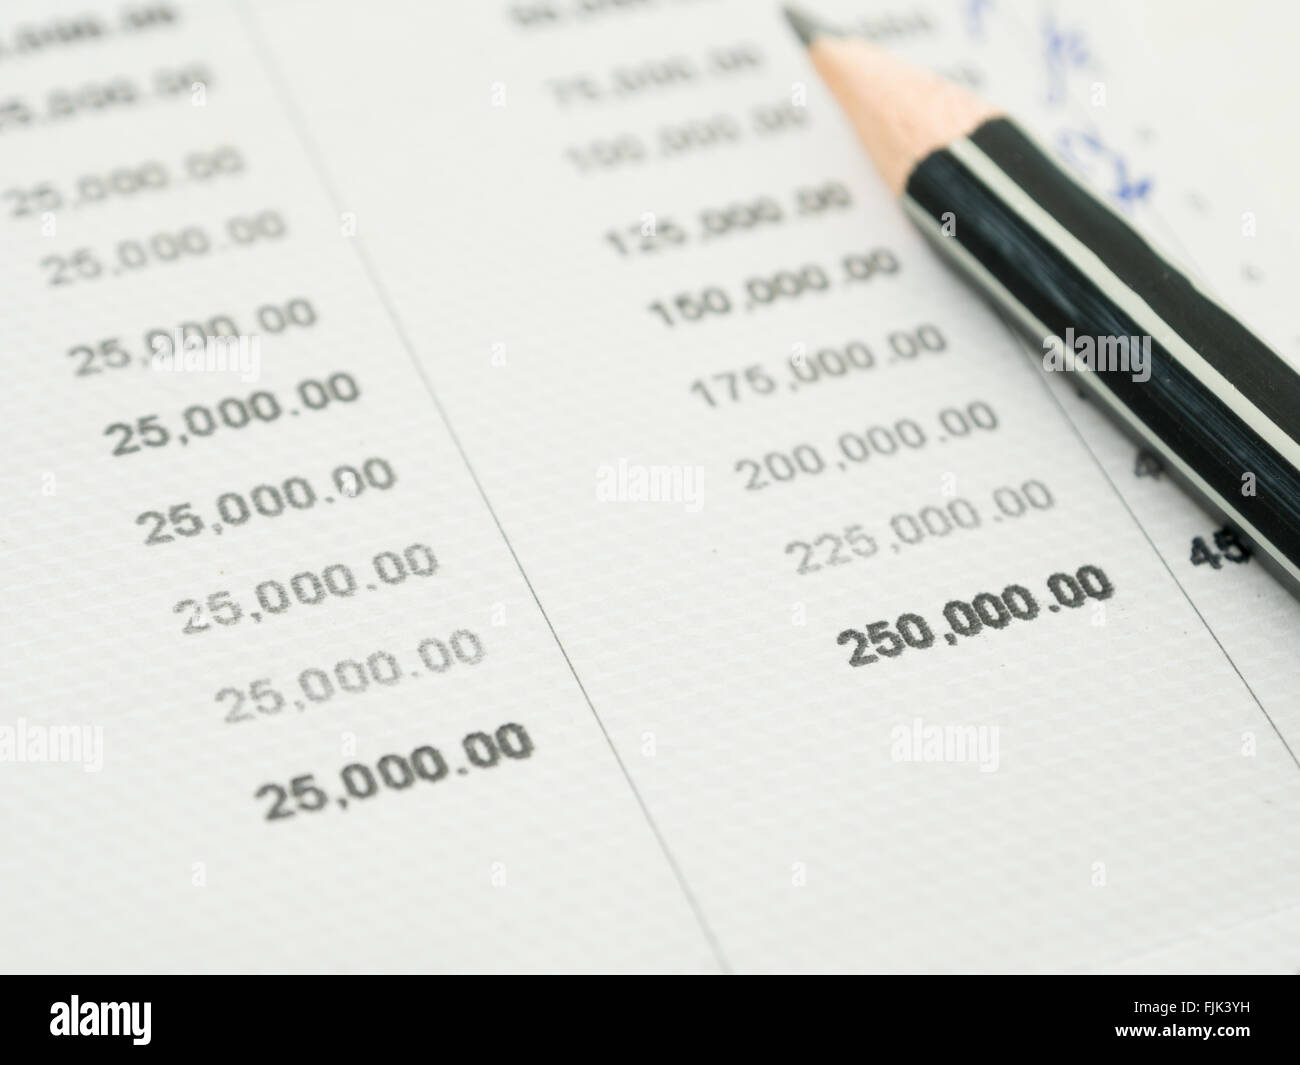 The Amount Deposited In The Bank Account Is Growing Steadily Stock Photo Alamy